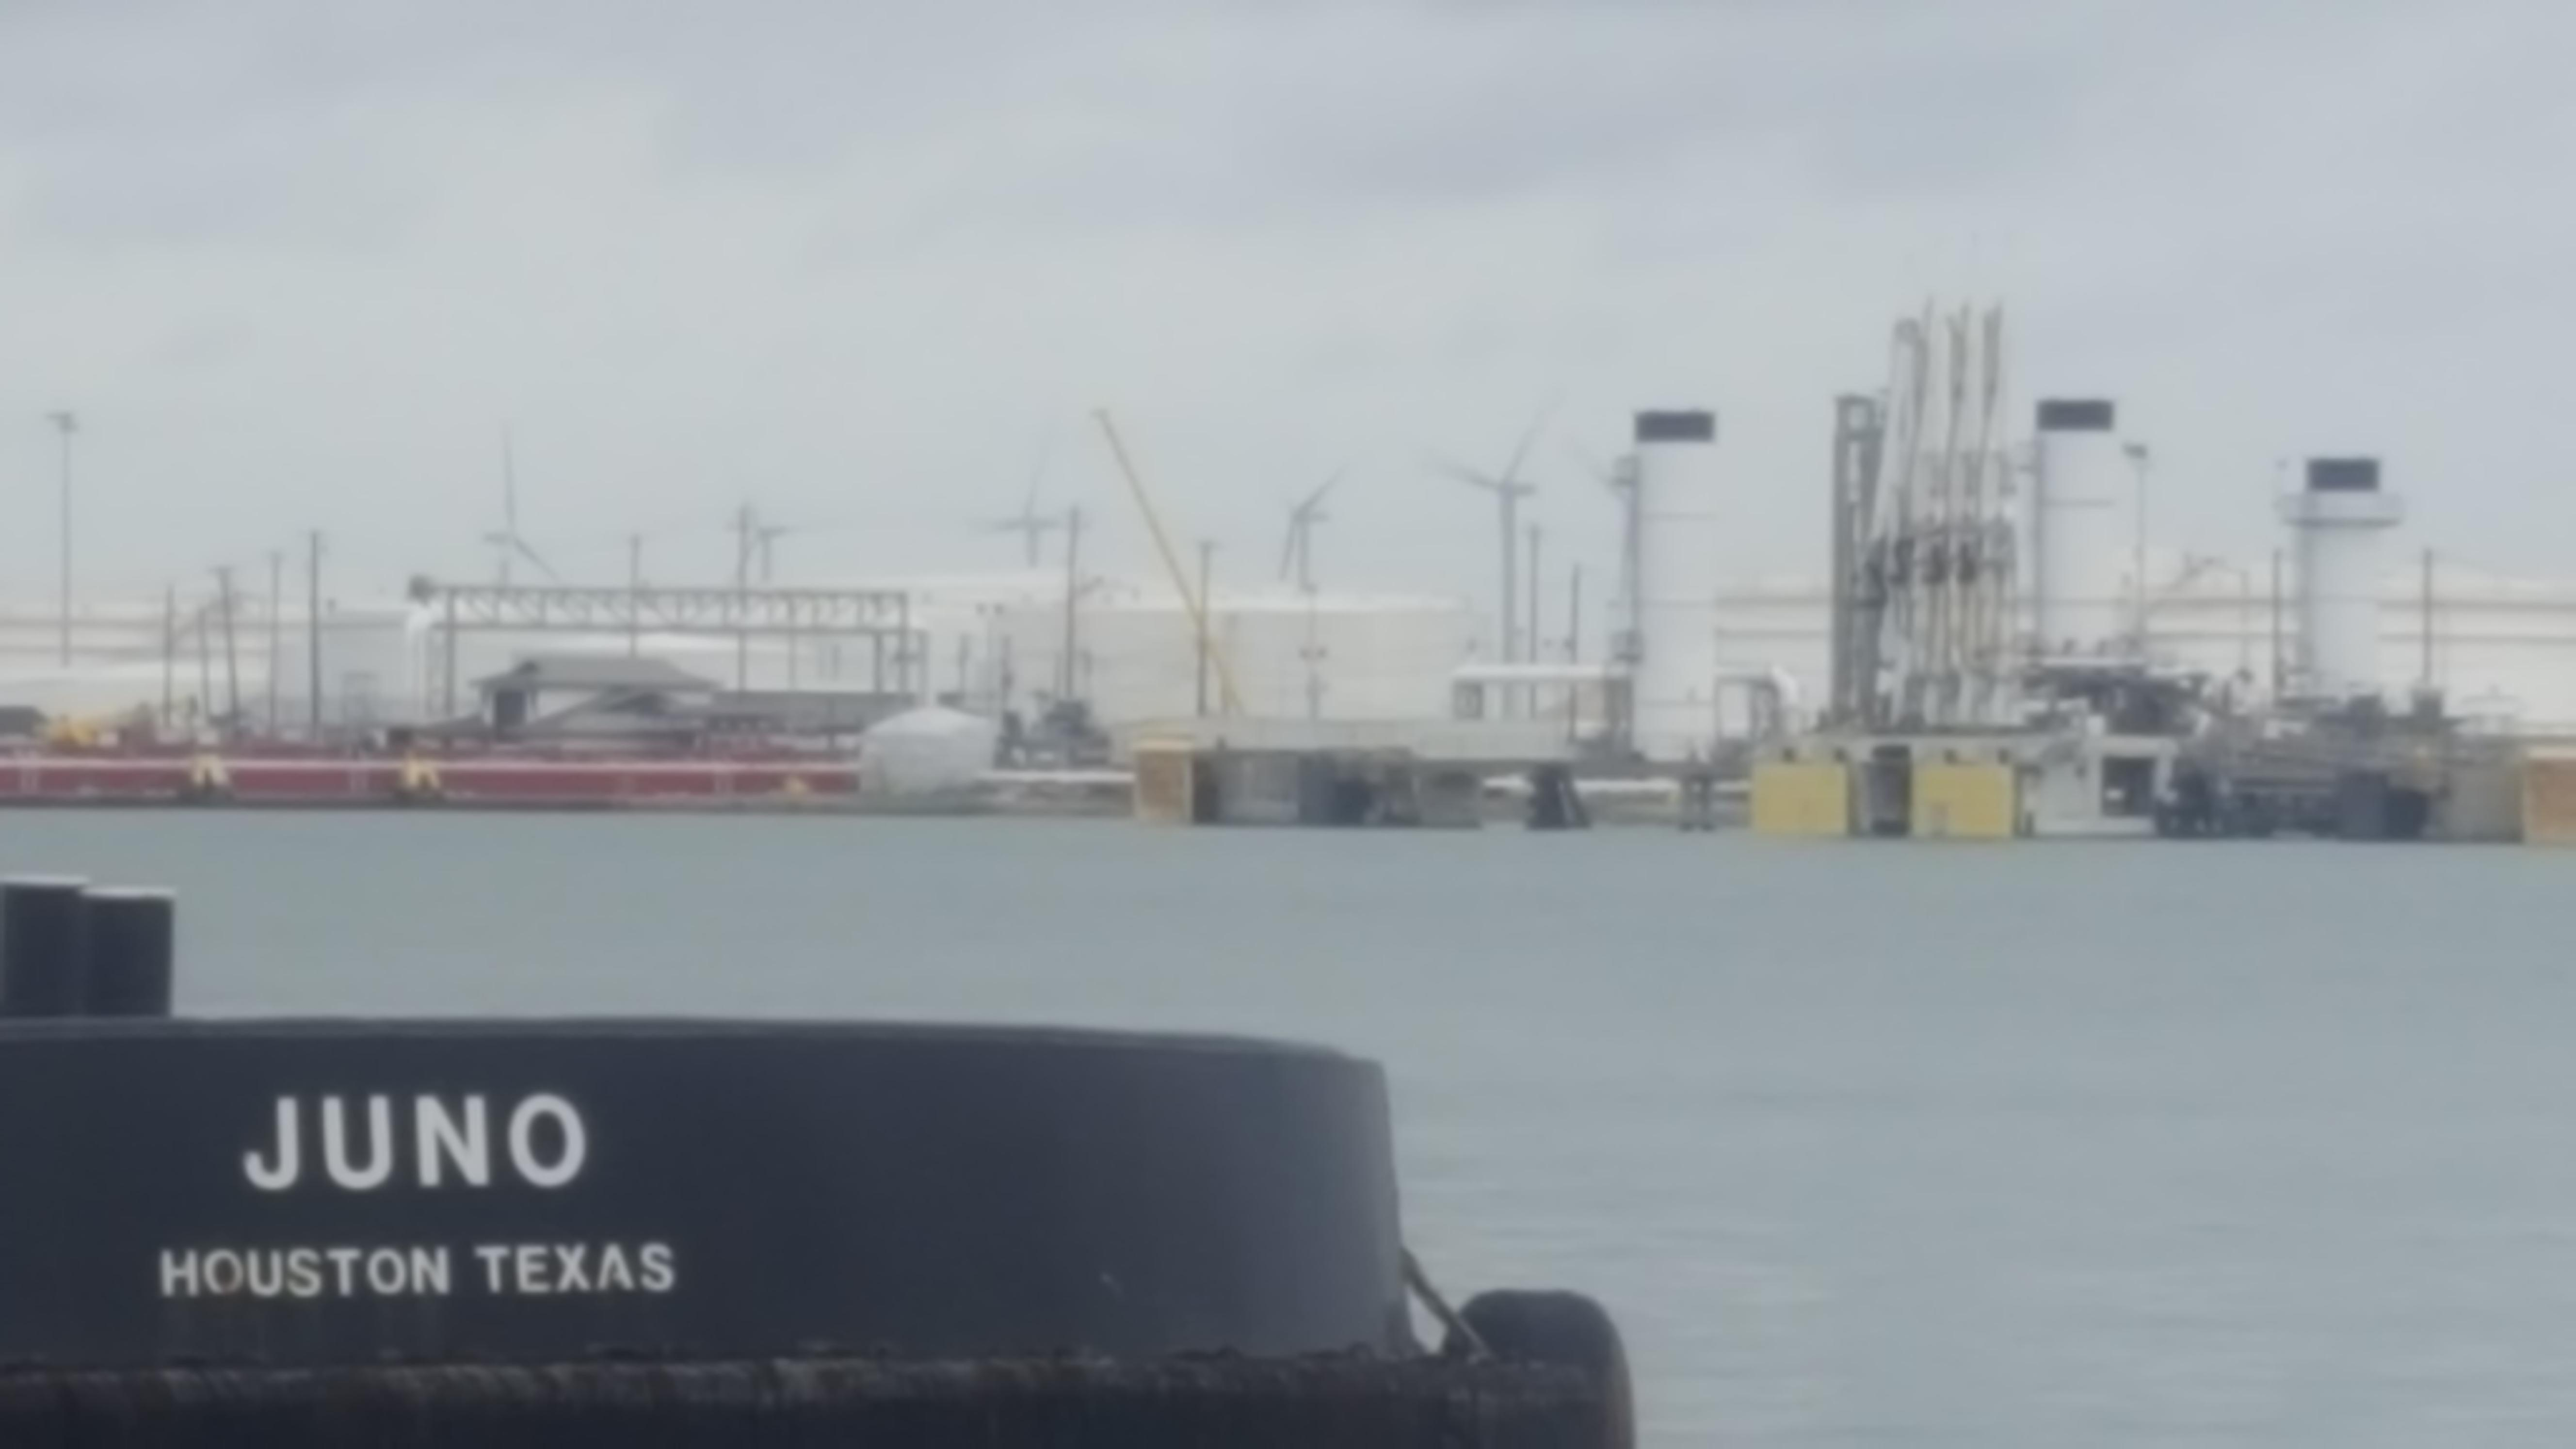 Port of houston site of shipping conference gerber realty houston business 1betcityfo Gallery